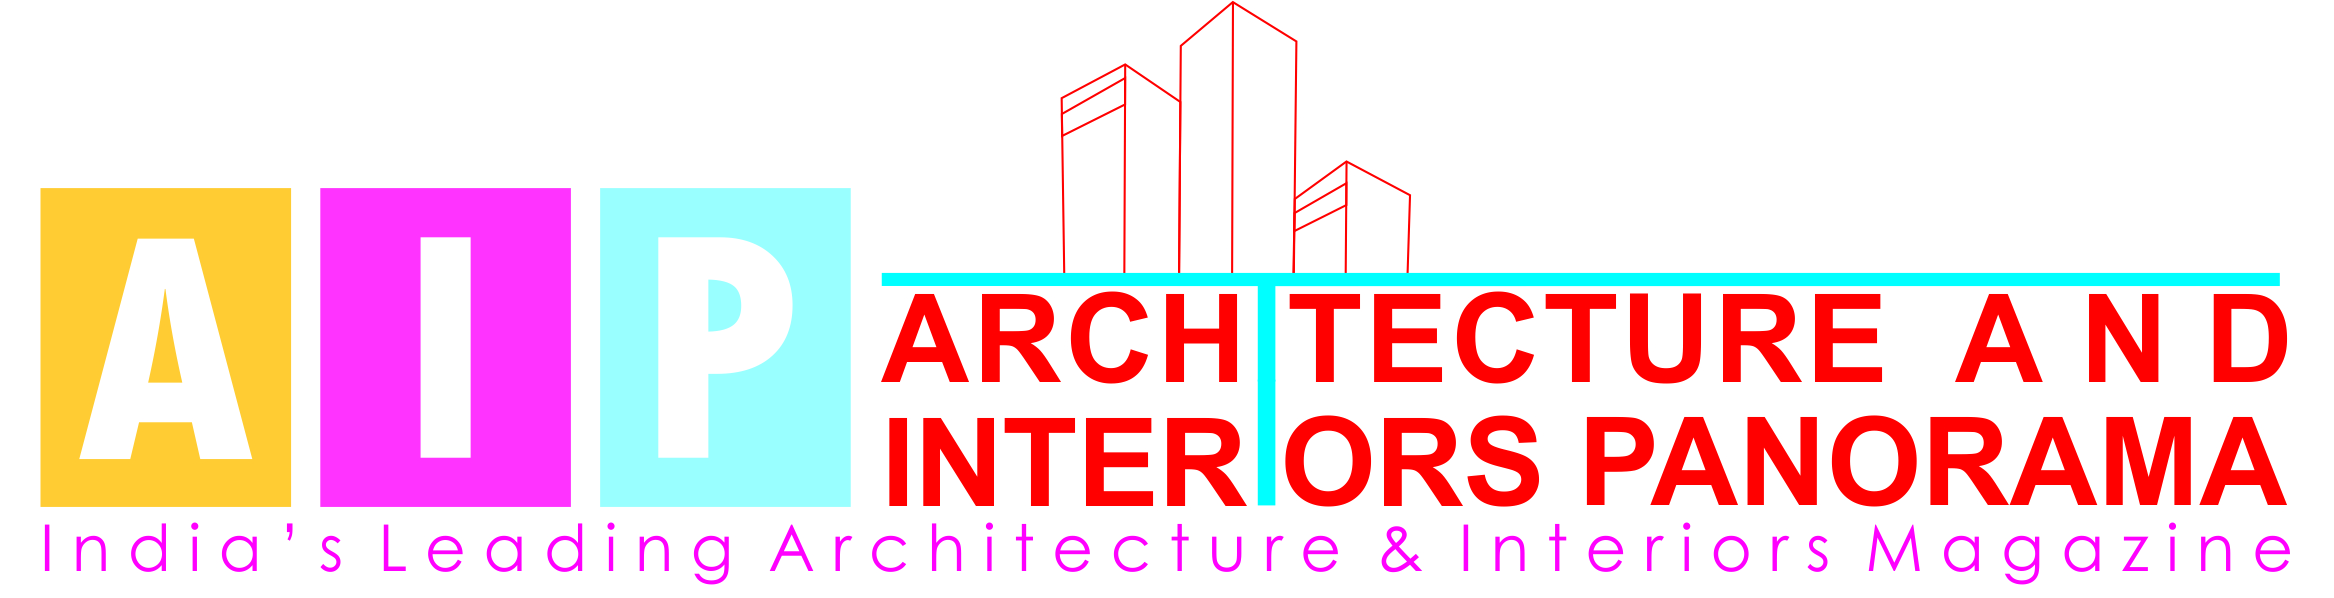 Architecture and Interiors International Panorama